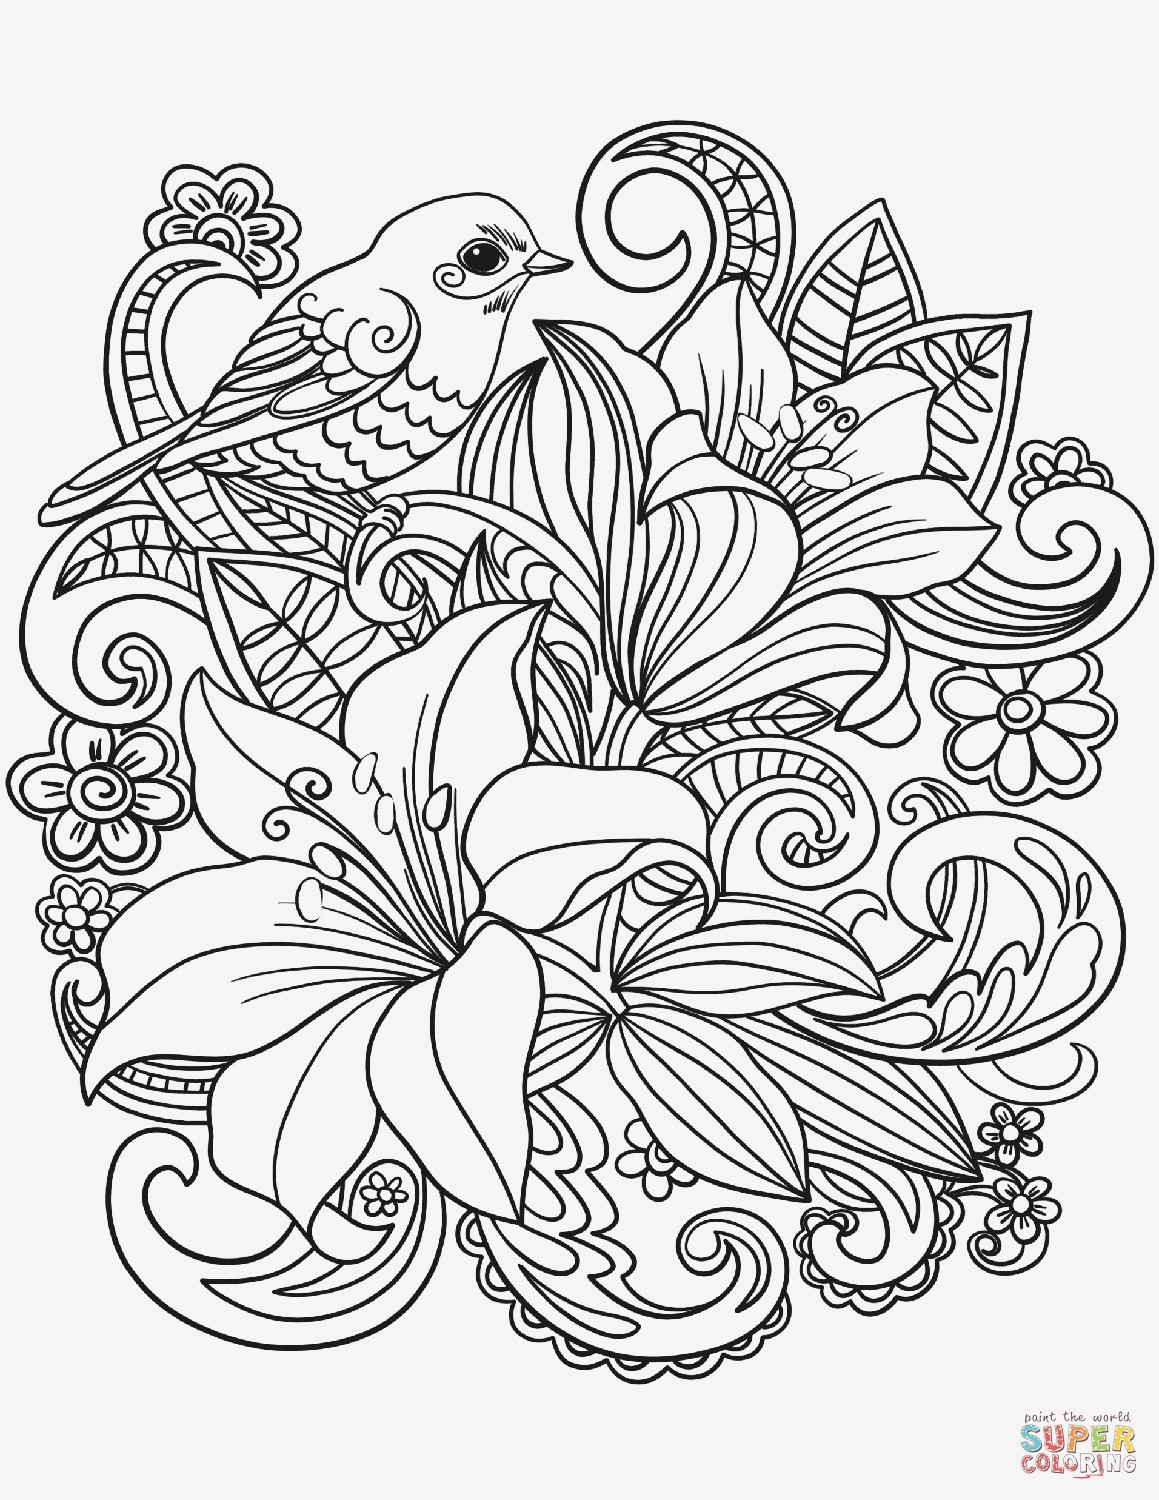 flowers delivered in vase of free flower coloring pages printable cool vases flower vase coloring with regard to free flower coloring pages printable cool vases flower vase coloring page pages flowers in a top i 0d